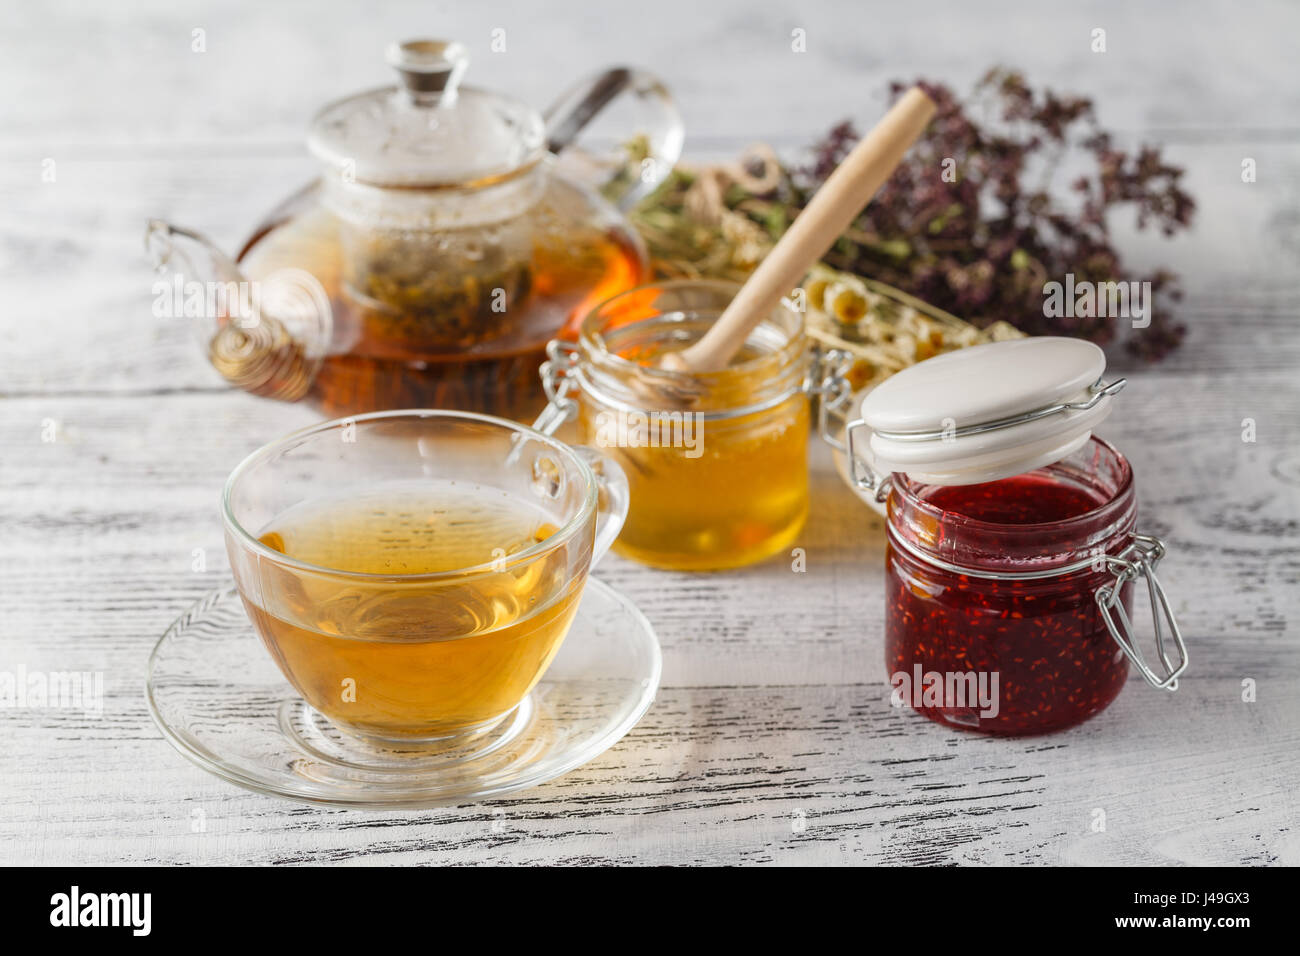 Jar with raspberry jam - Stock Image